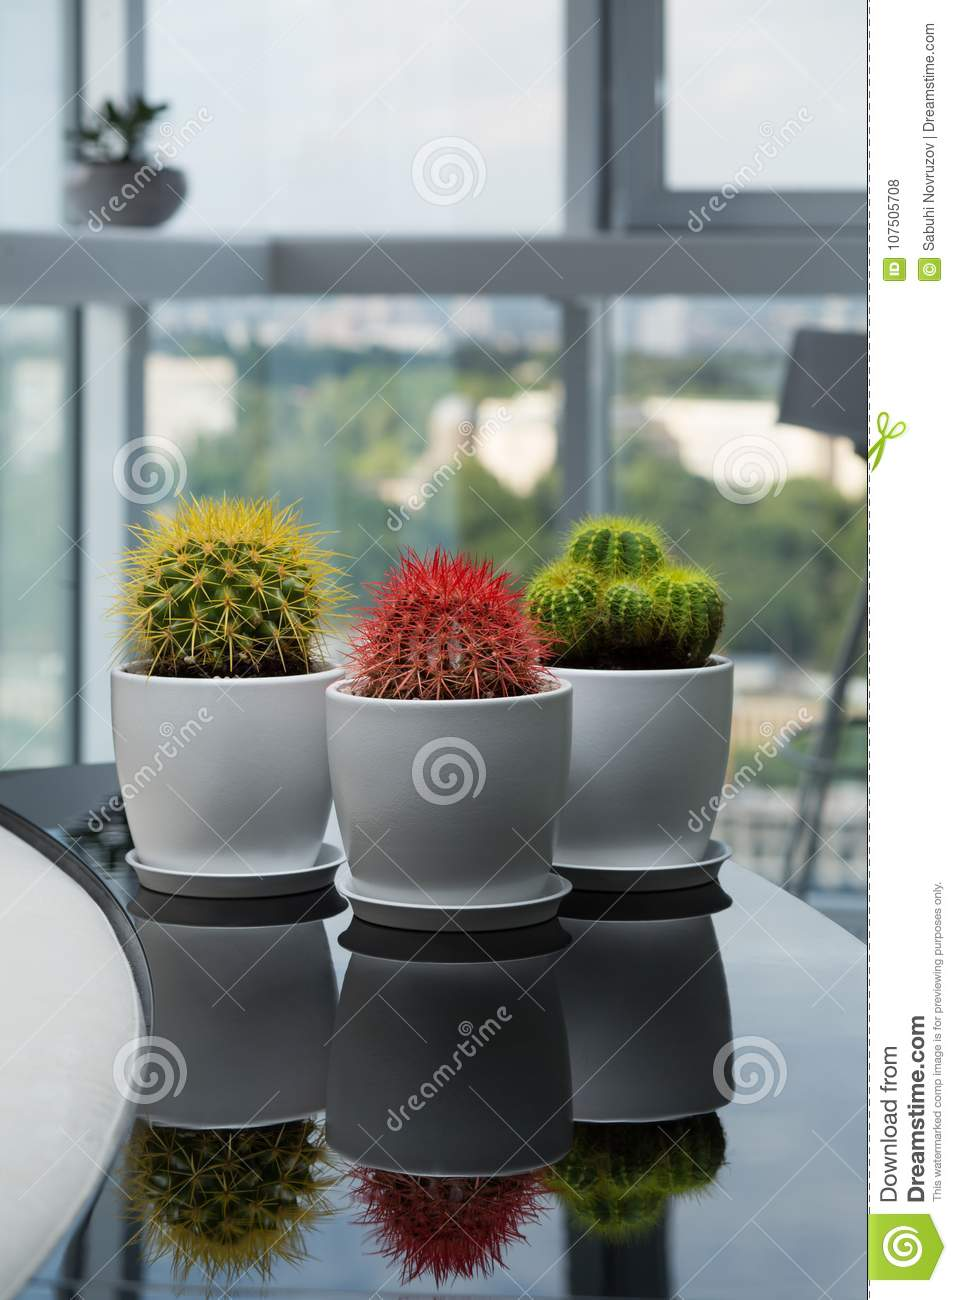 Download Three Cactus On The Table. House Plants In The Room. Modern  Interior.